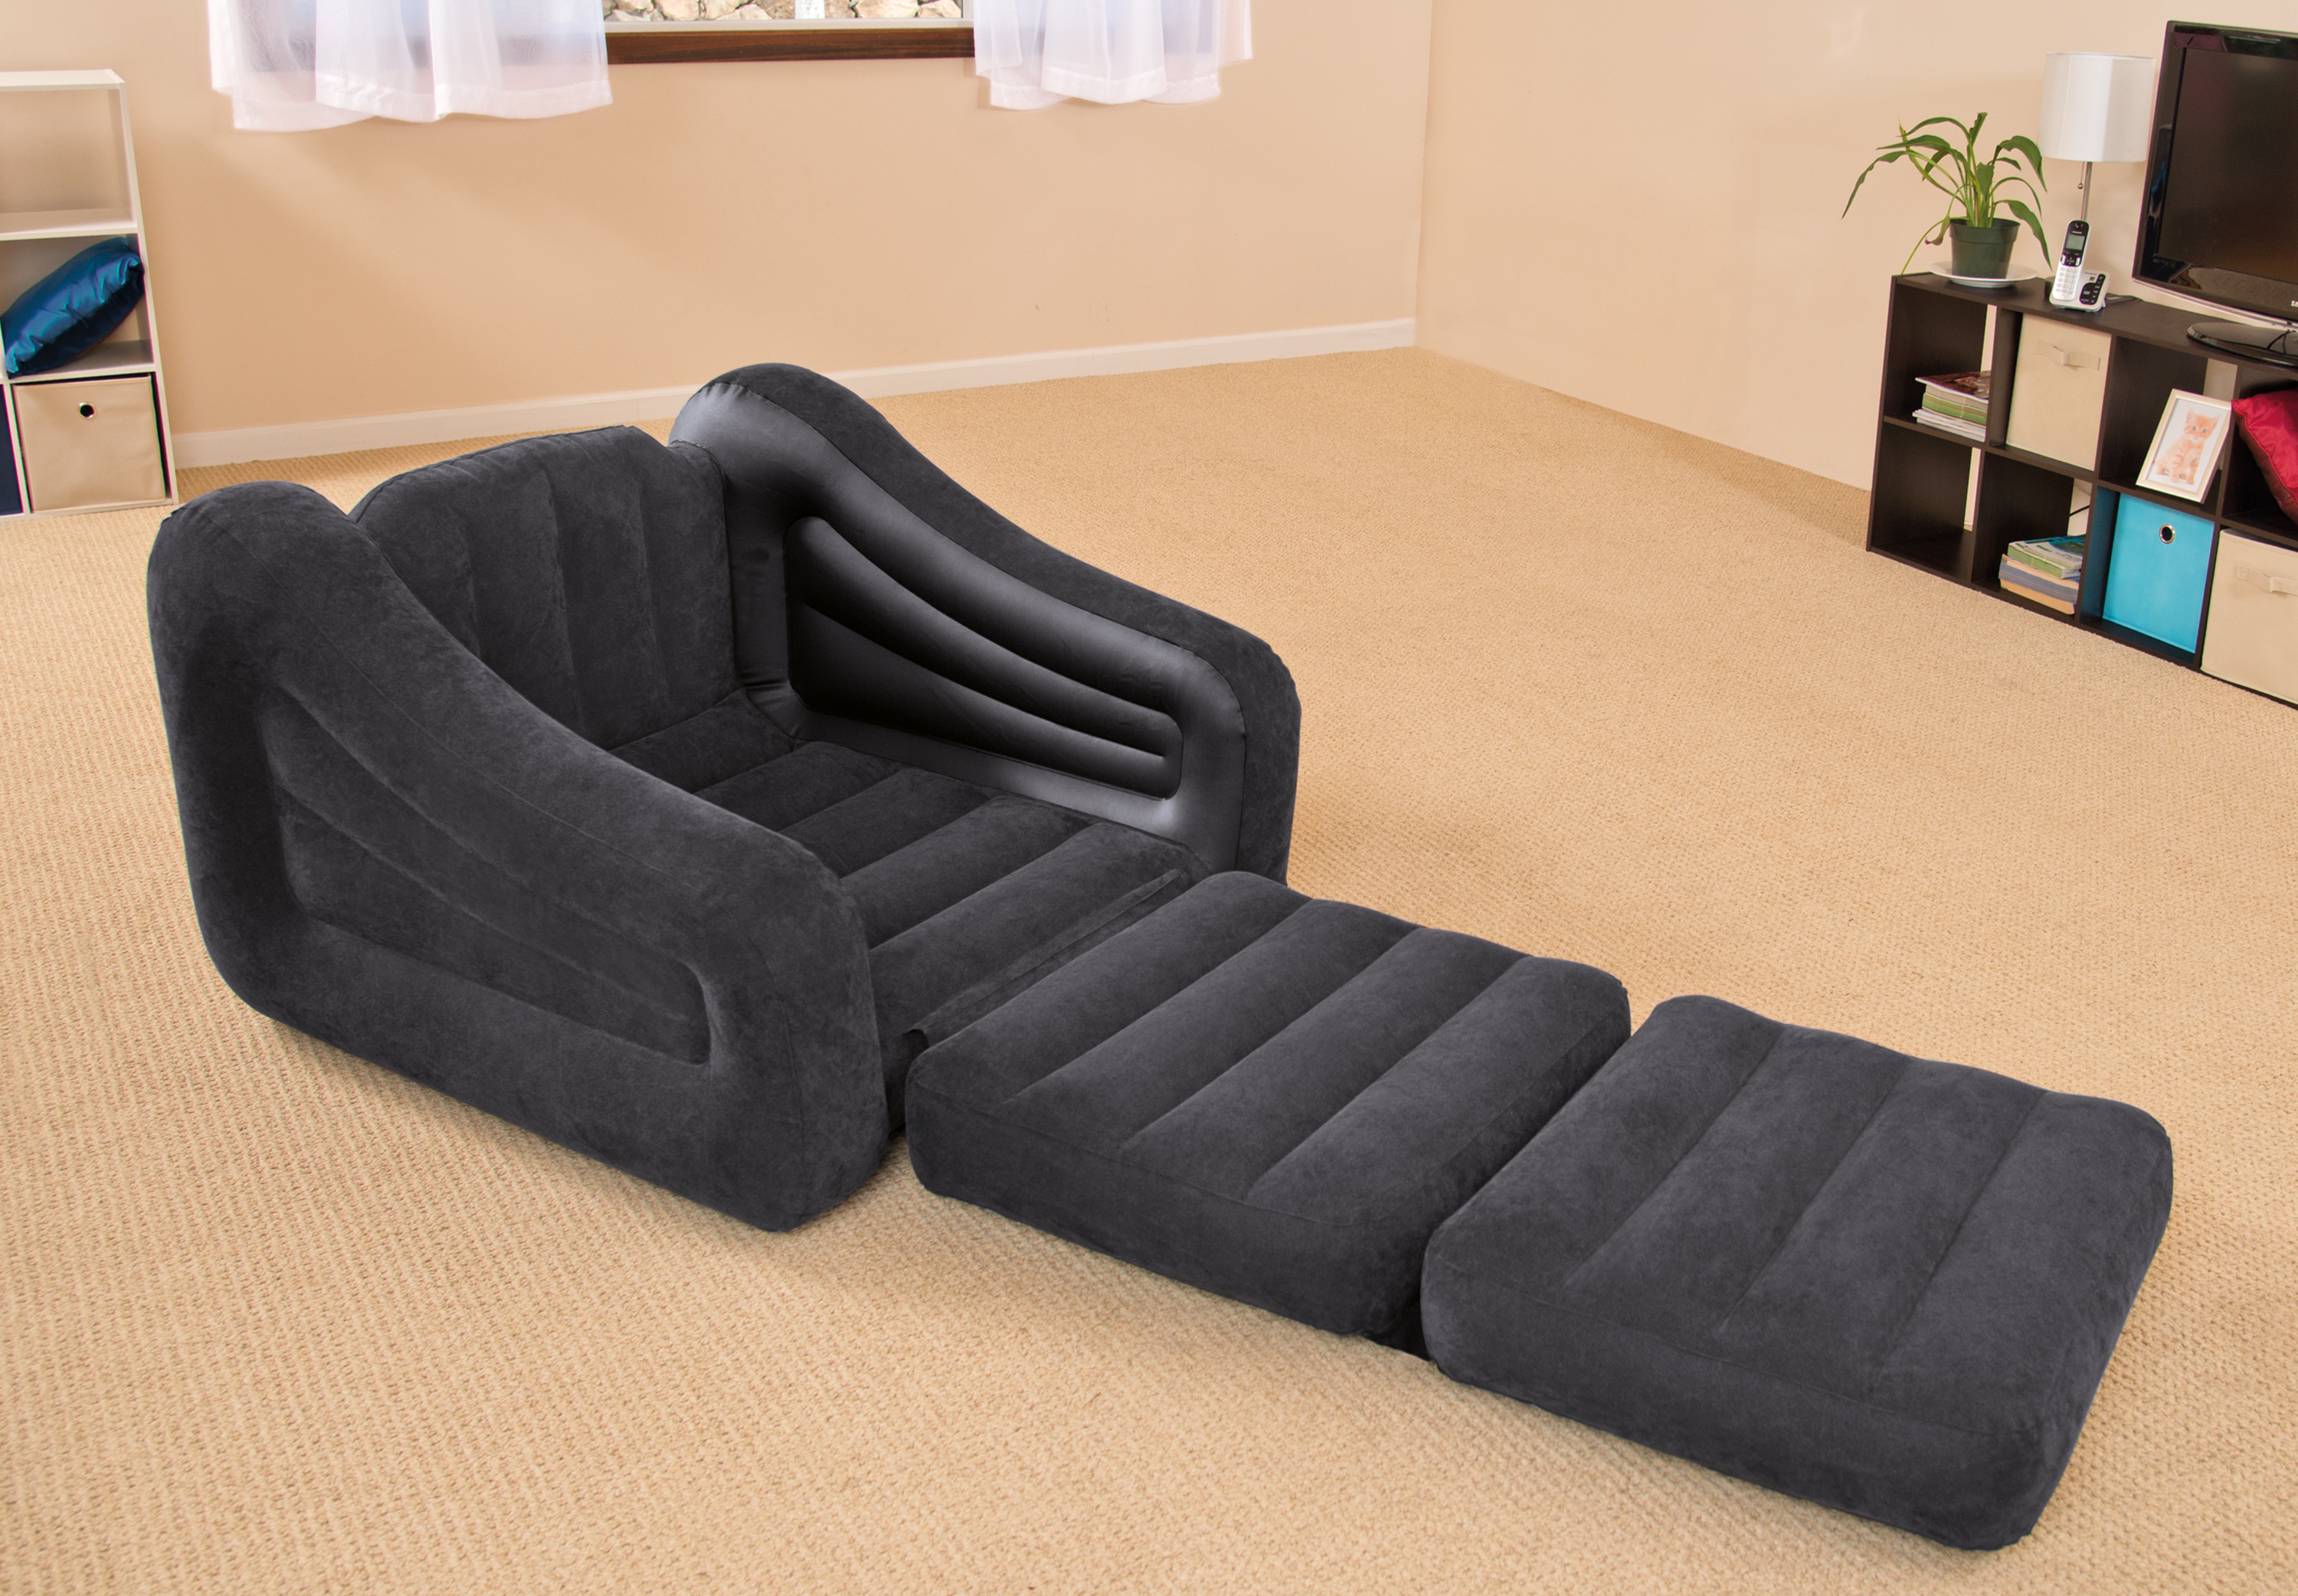 Intex Sofa Bed Intex Inflatable Air Chair With Pull Out Twin Bed Mattress